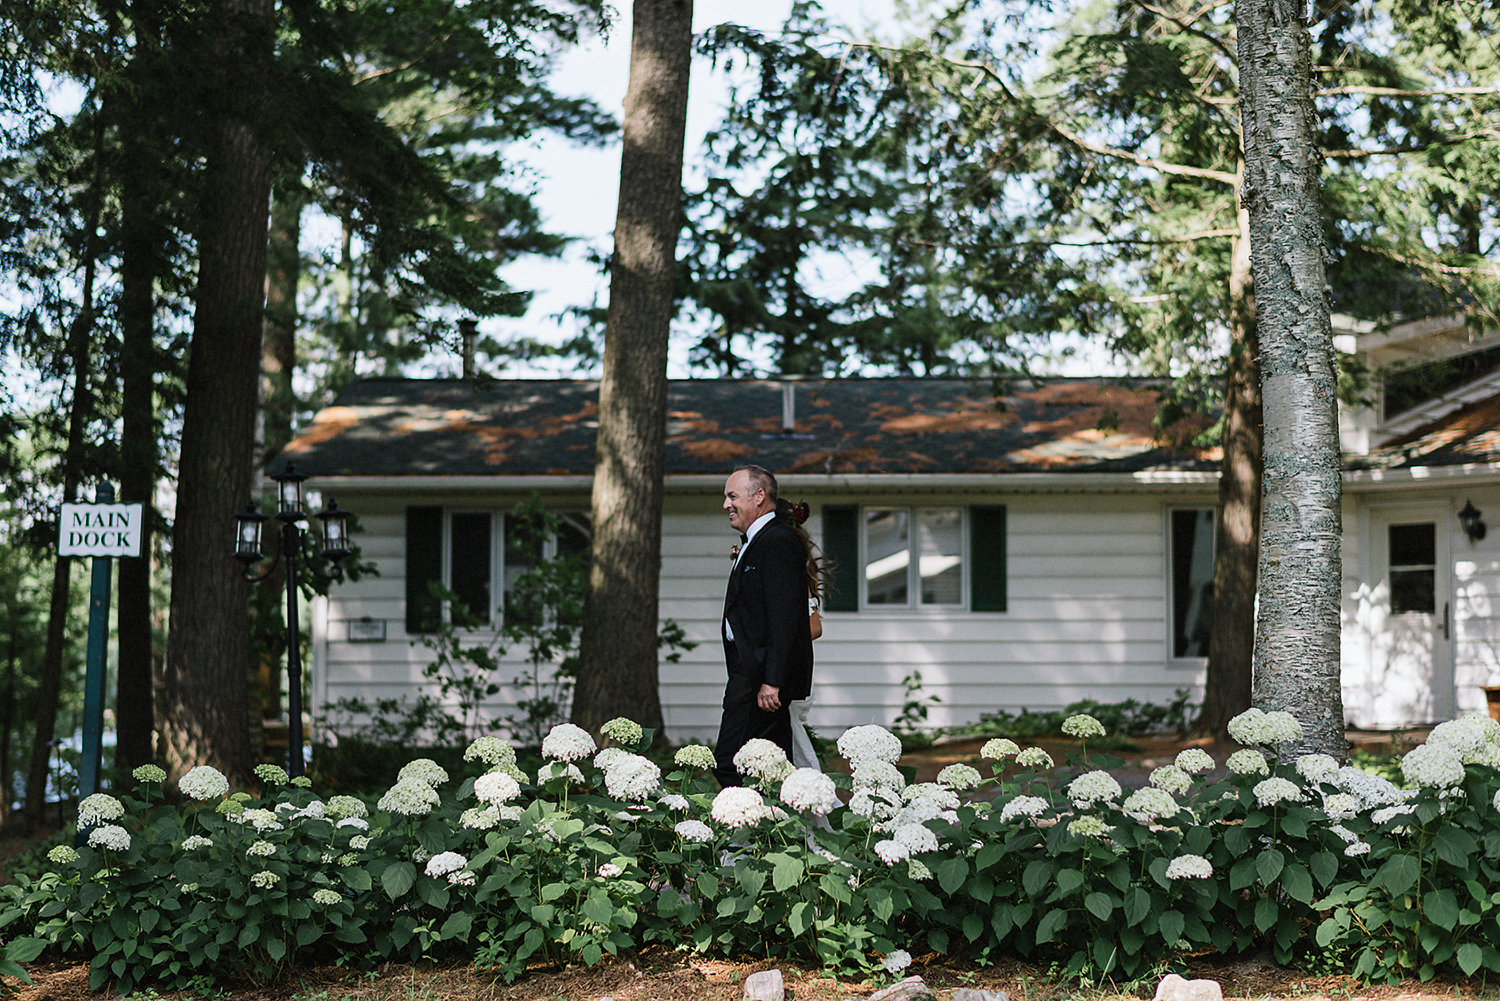 Muskoka-Cottage-Wedding-Photography-Photographer_Photojournalistic-Documentary-Wedding-Photography_Vintage-Bride-Lovers-Land-Dress_Rue-Des-Seins_Forest-Ceremony-Bride-and-father.jpg